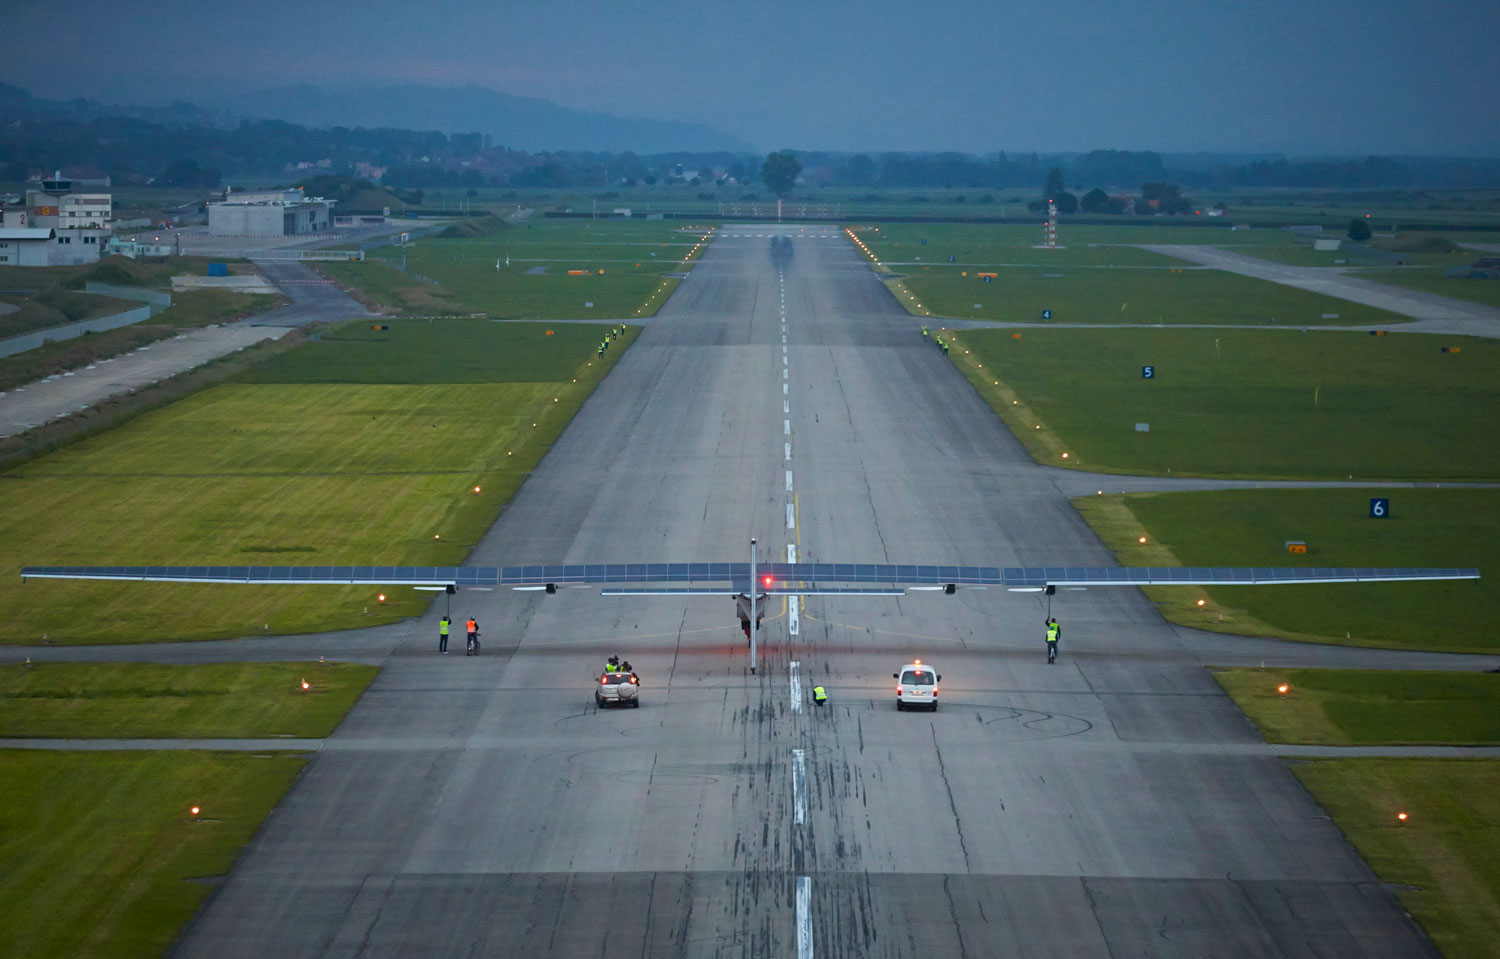 German test pilot Markus Scherdel prepares for take-off in the solar-powered Solar Impulse 2 aircraft on its maiden flight at its base in Payerne June 2, 2014.